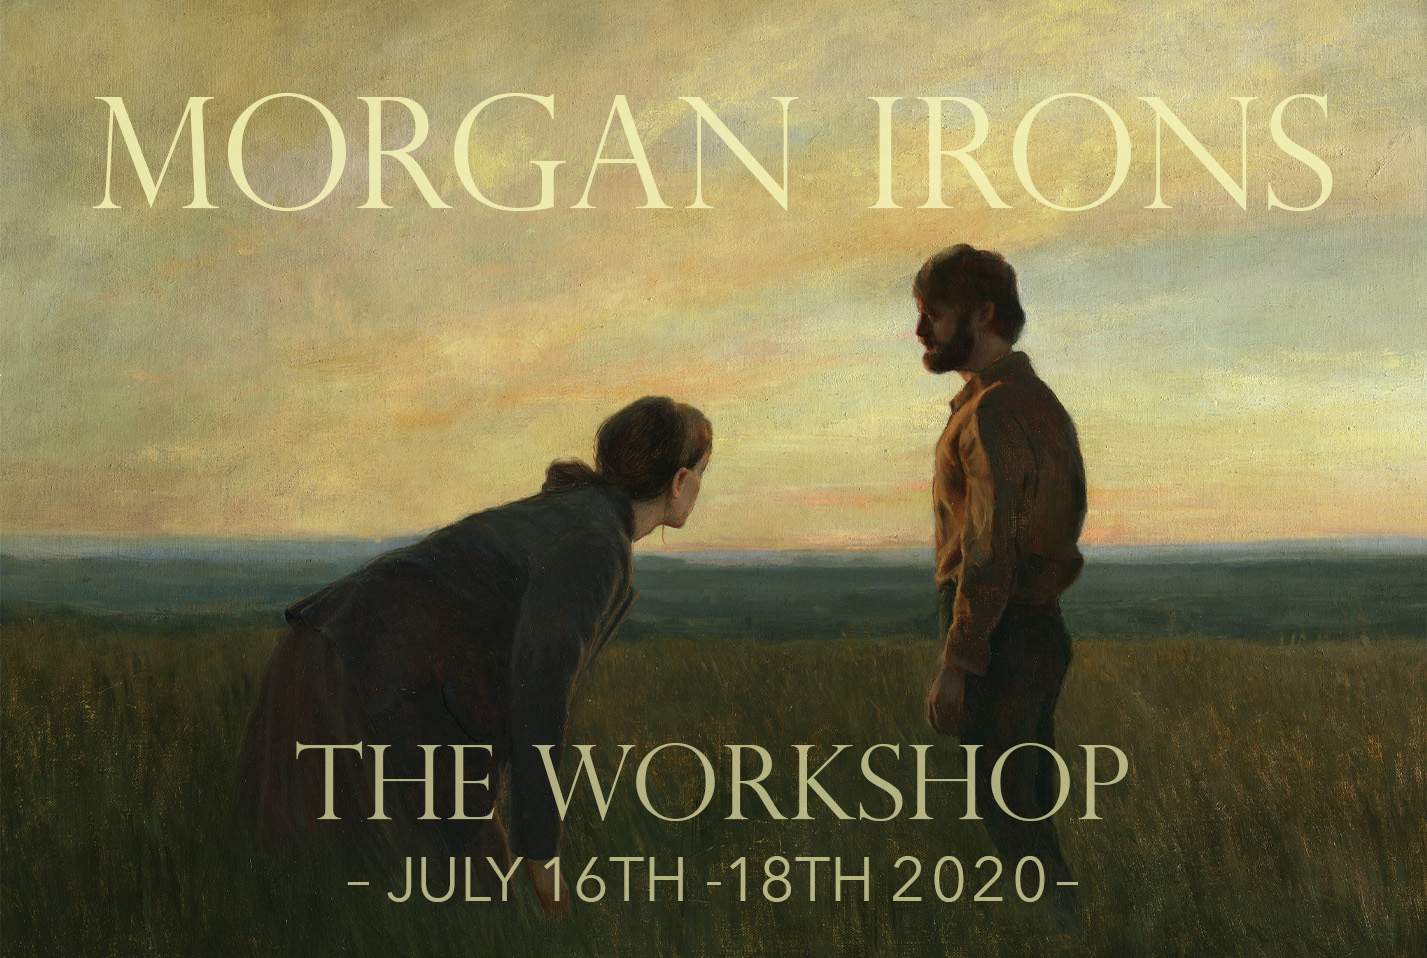 Morgan Irons Workshop event page picture